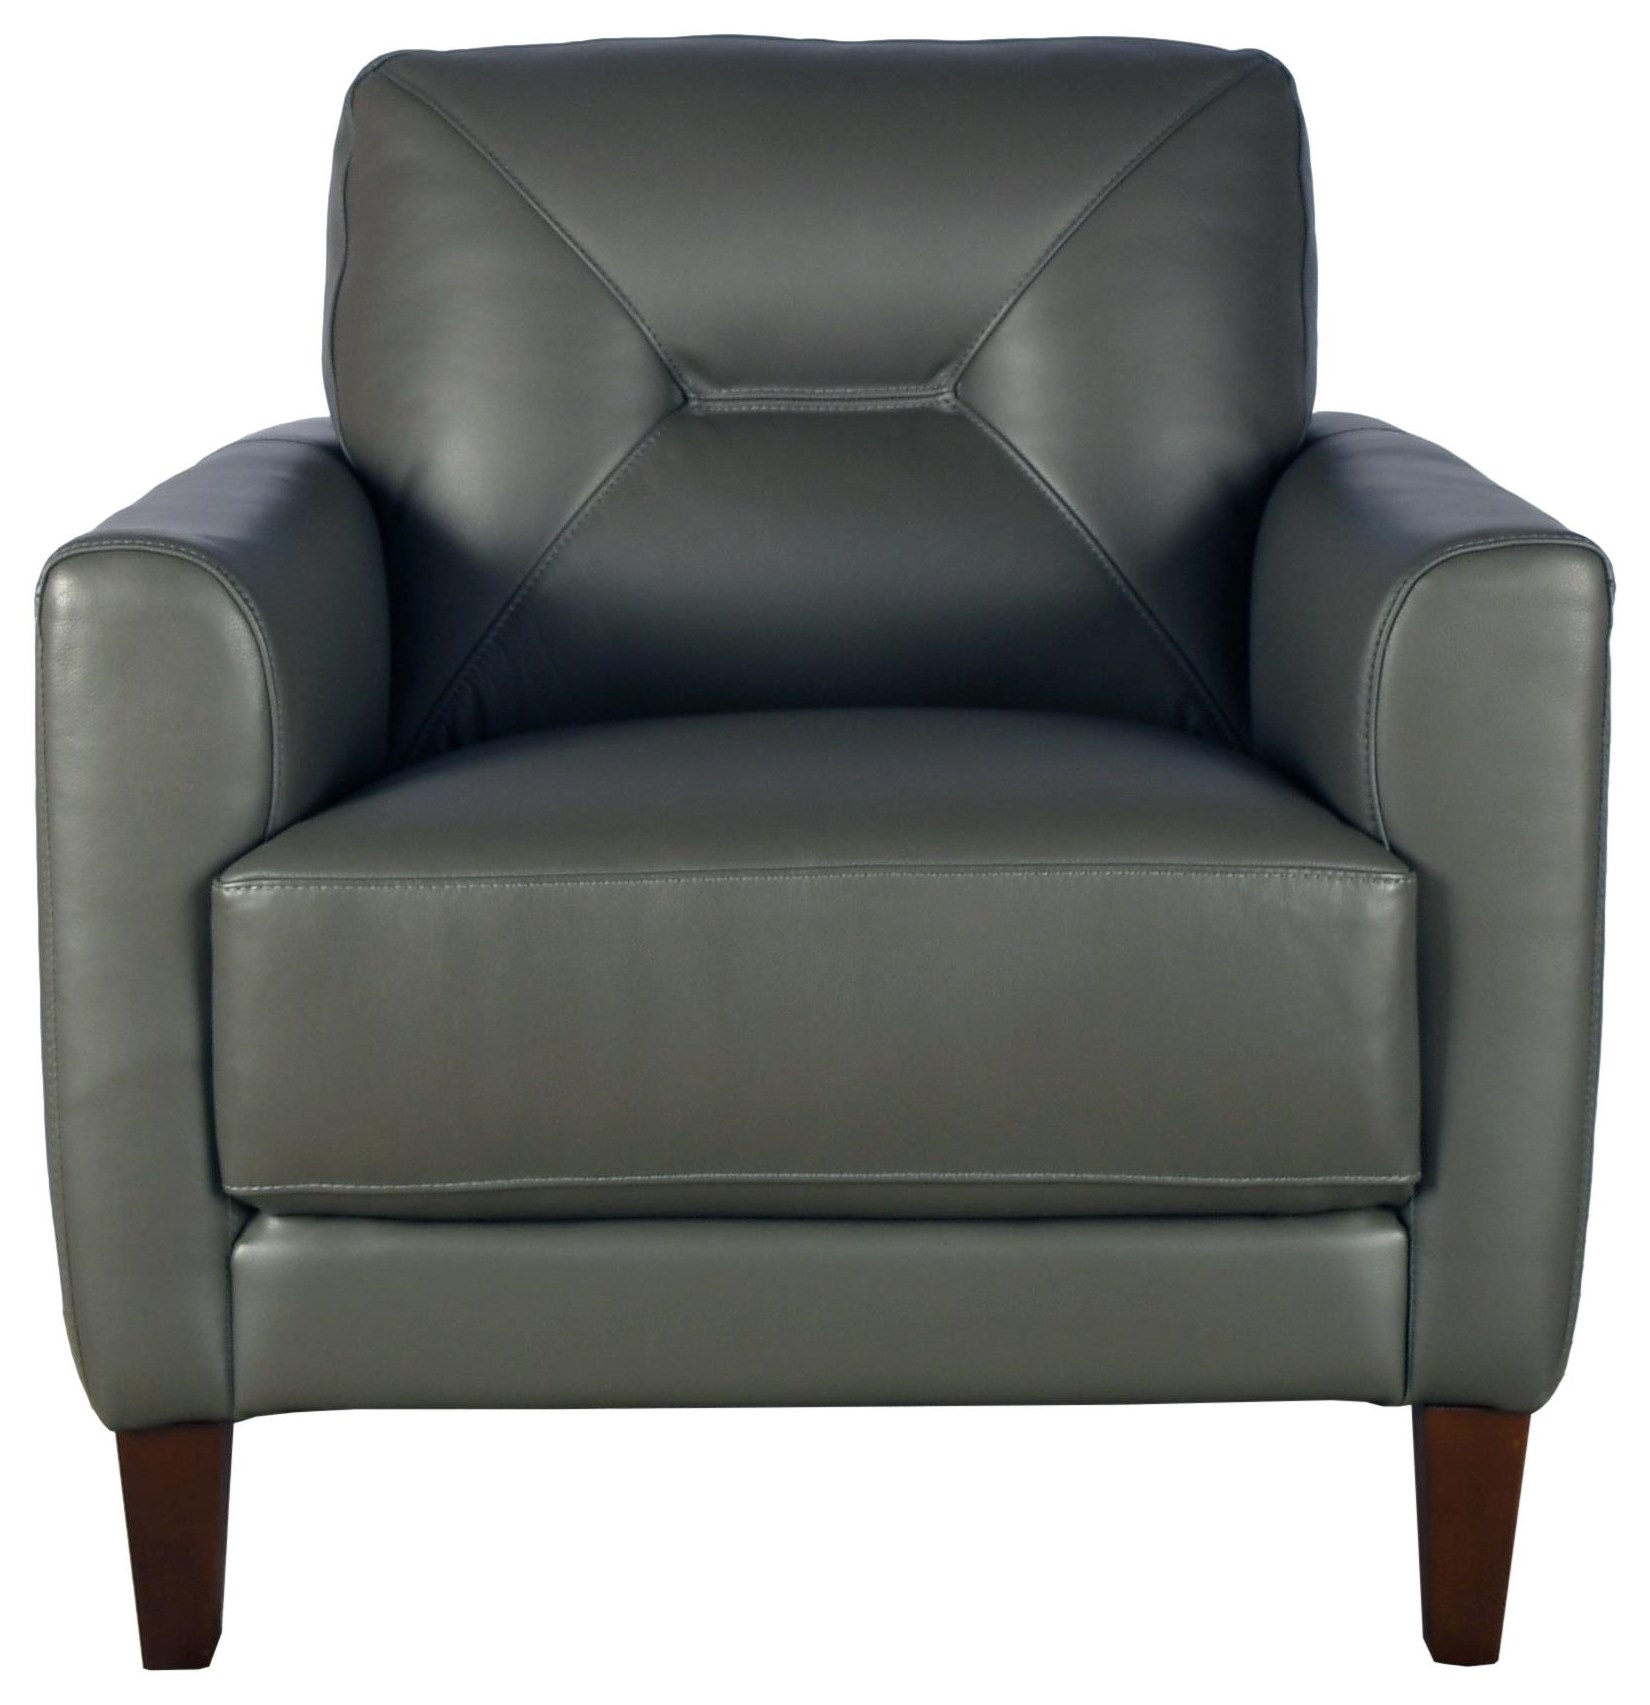 Clooney Leather Chair at Bennett's Furniture and Mattresses